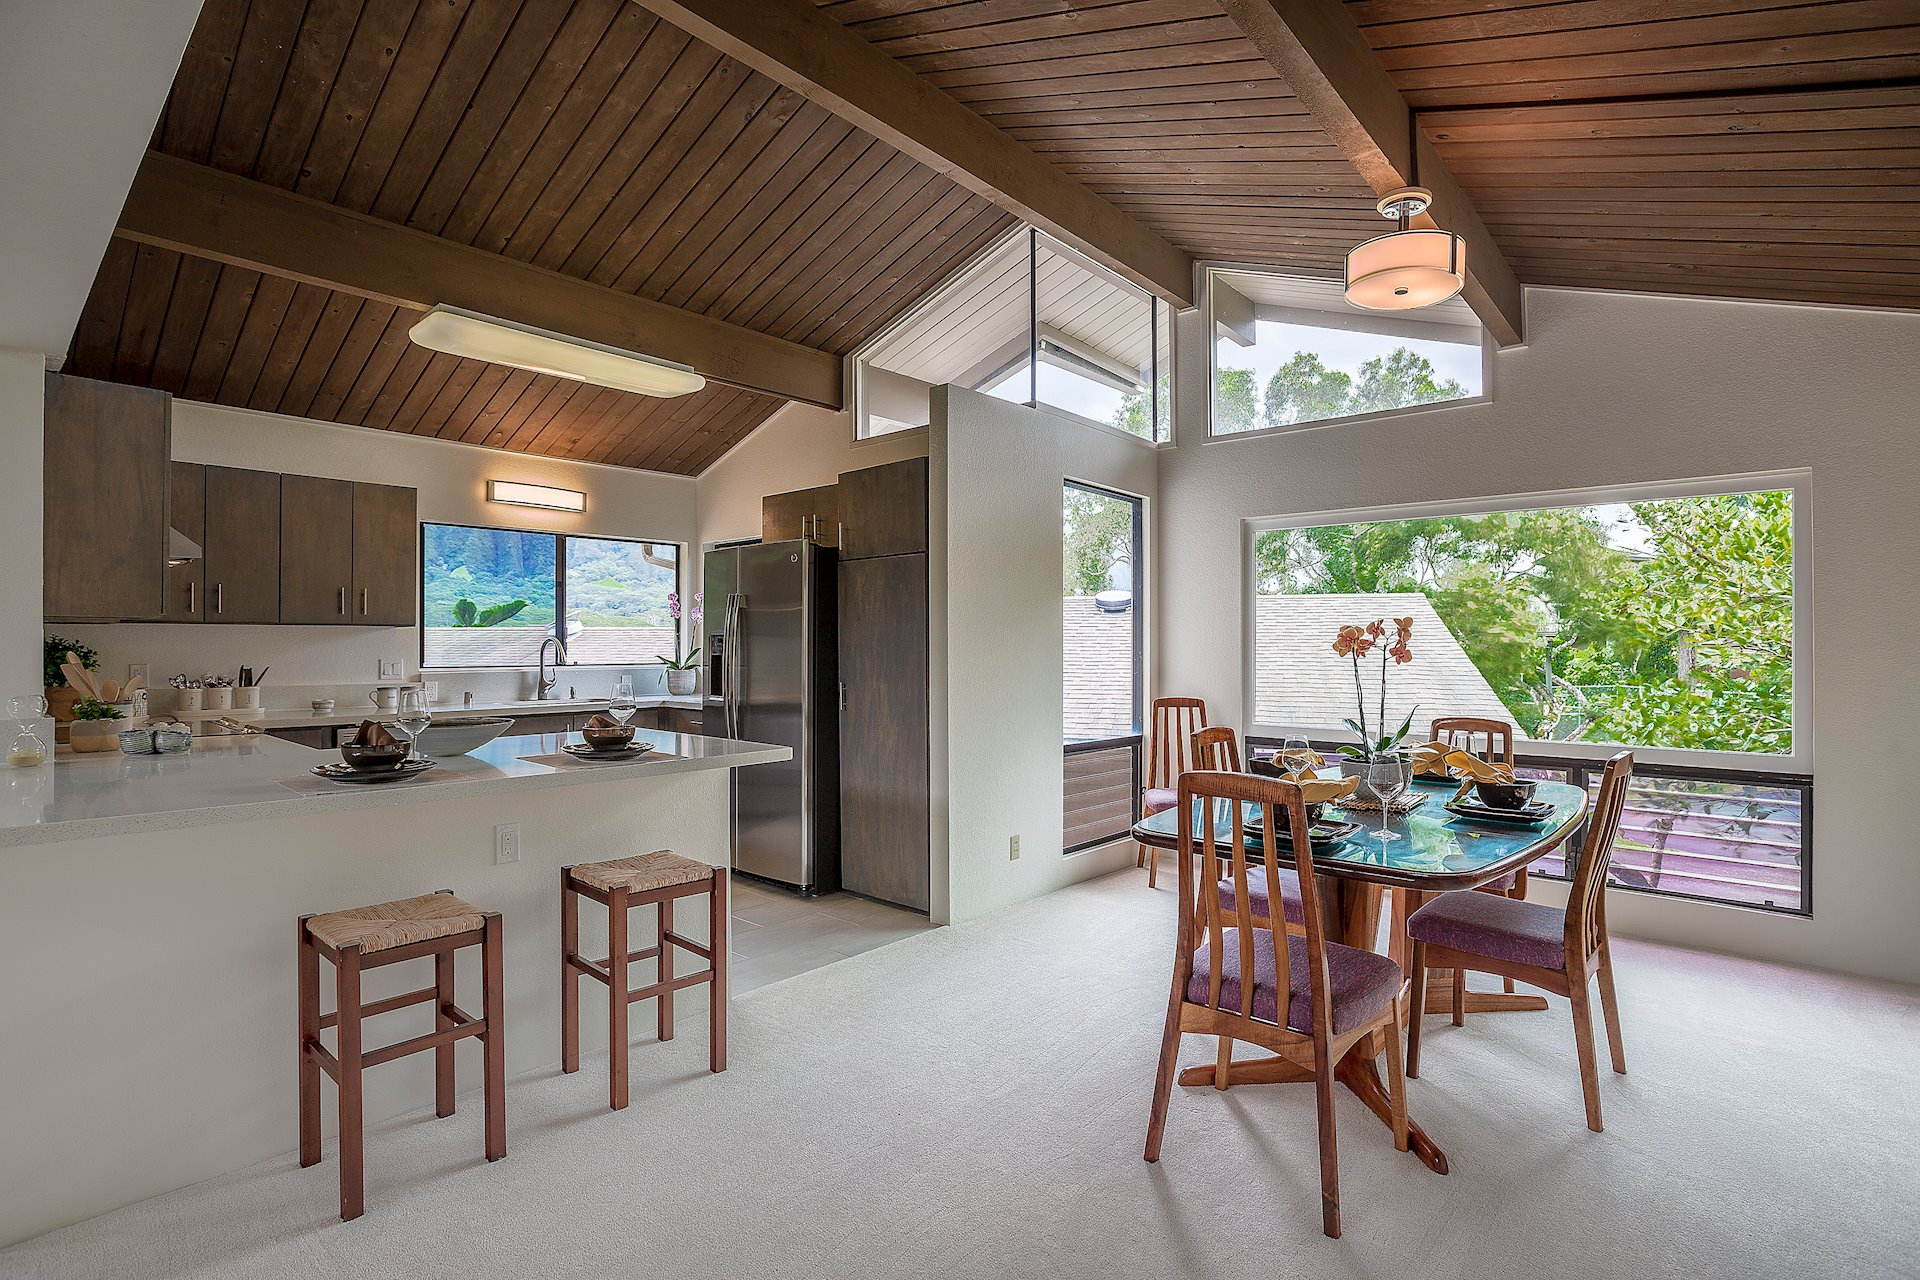 The dining sits off the kitchen with large windows and bright lighting.  Beautiful architectural lines in this home.